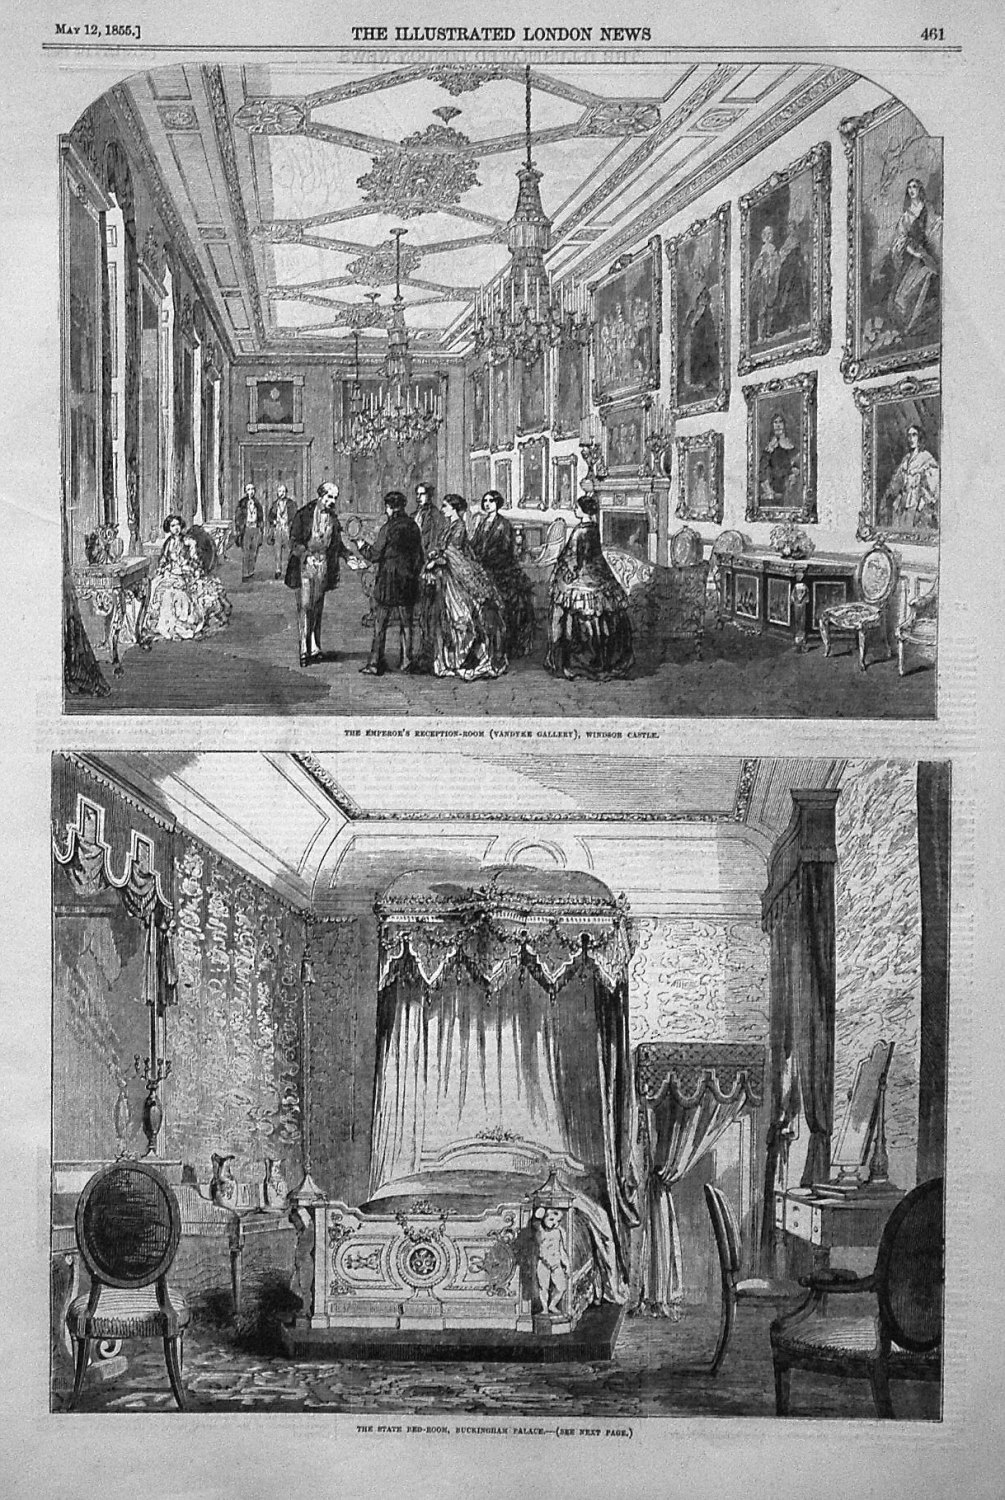 The Emperor's Reception-Room (Vandyke Gallery), Windsor Castle. 1855